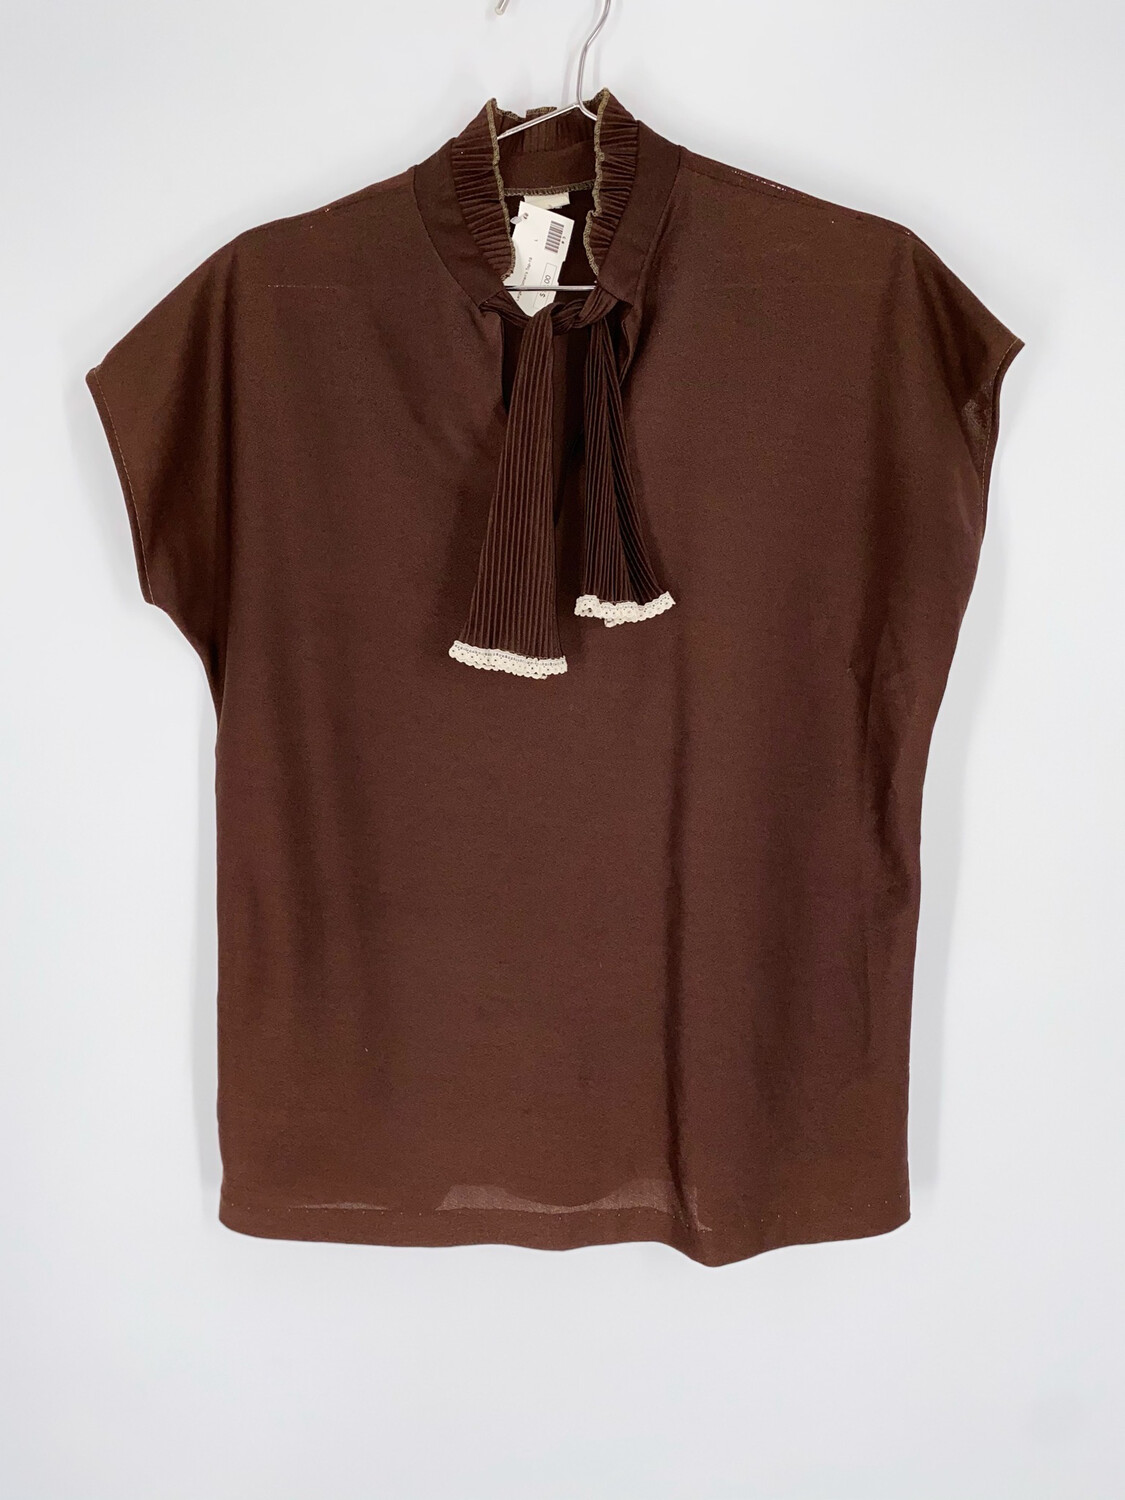 Brown Sleeveless Top With Tie Size L